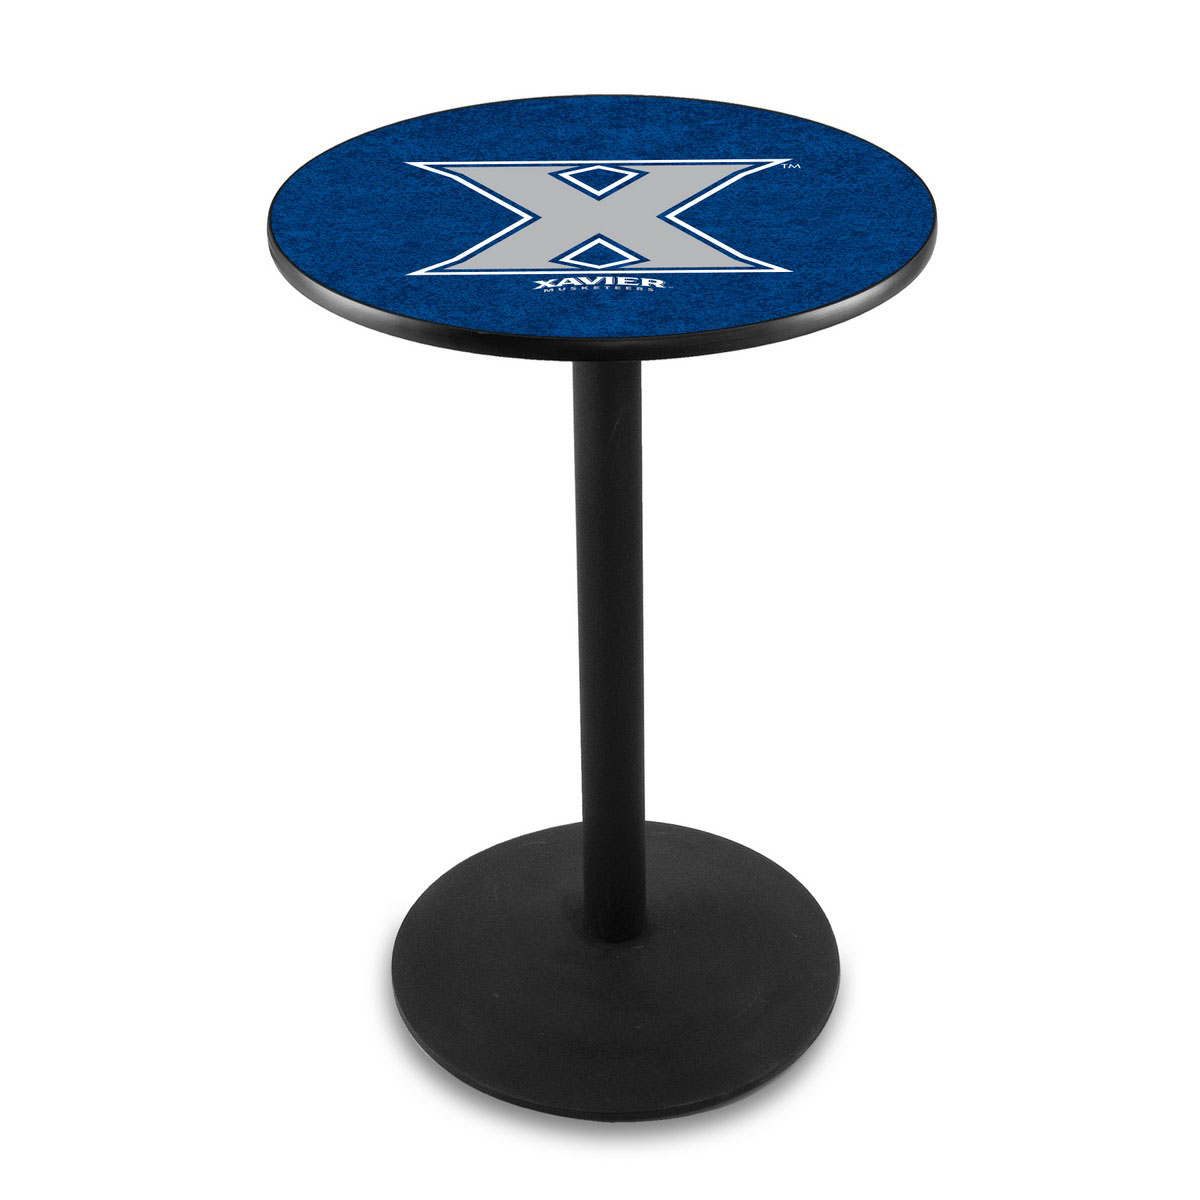 Remarkable Xavier Logo Pub Bar Table Round Stand Product Photo